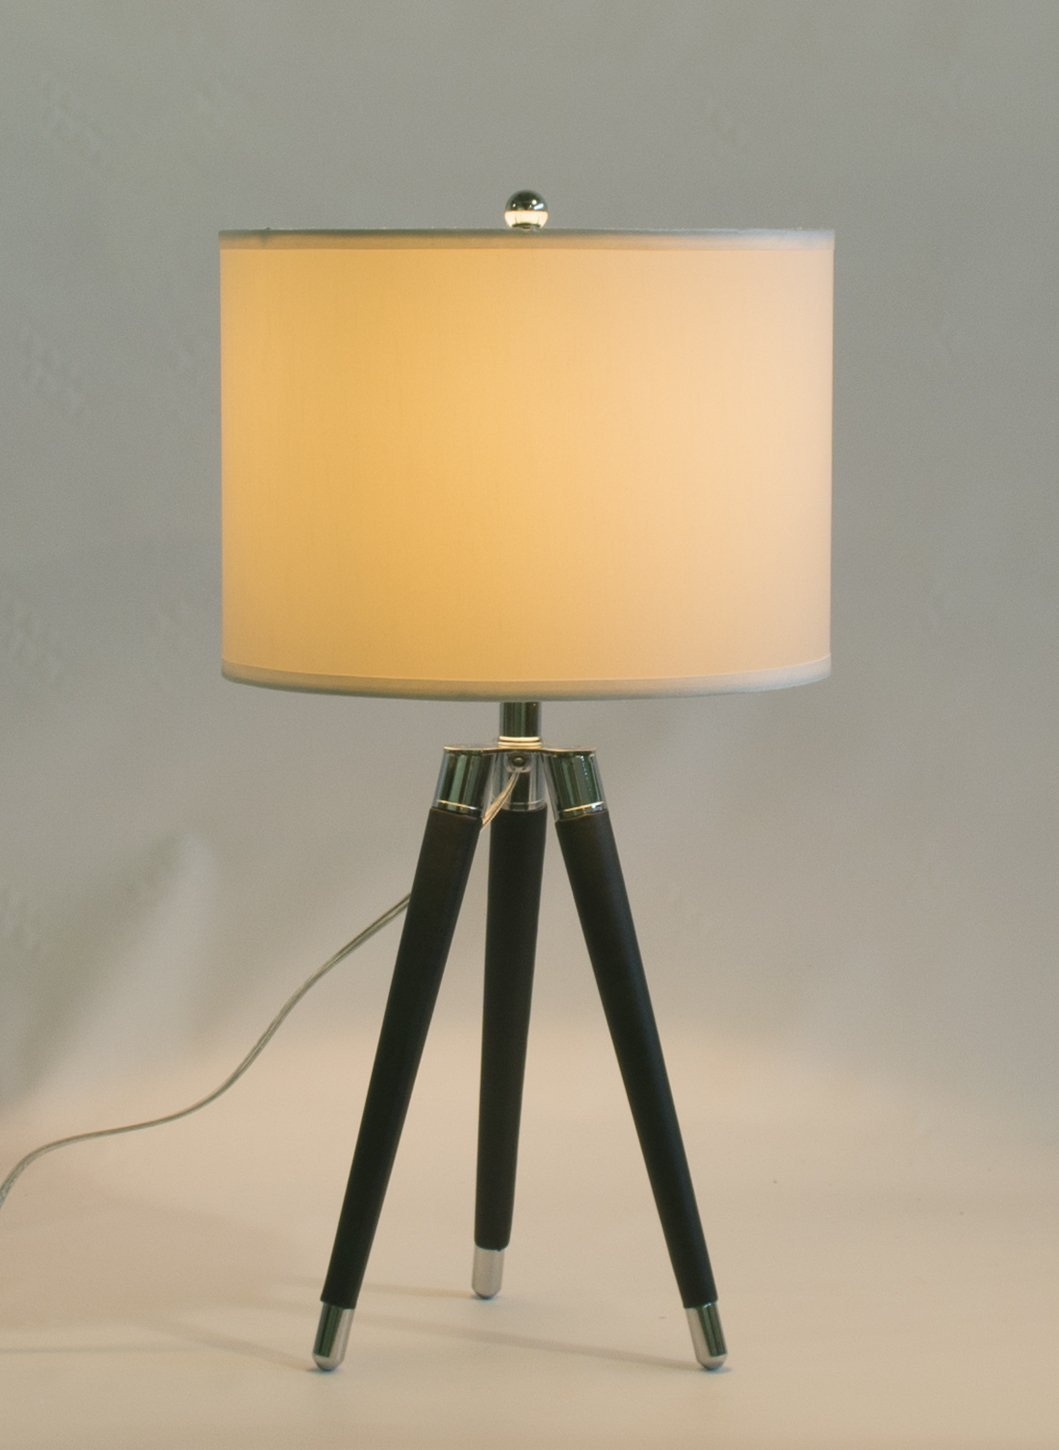 Black Mid Century Modern Tripod Leather U0026 Chrome Table Lamp With 14 Inch  White Drum